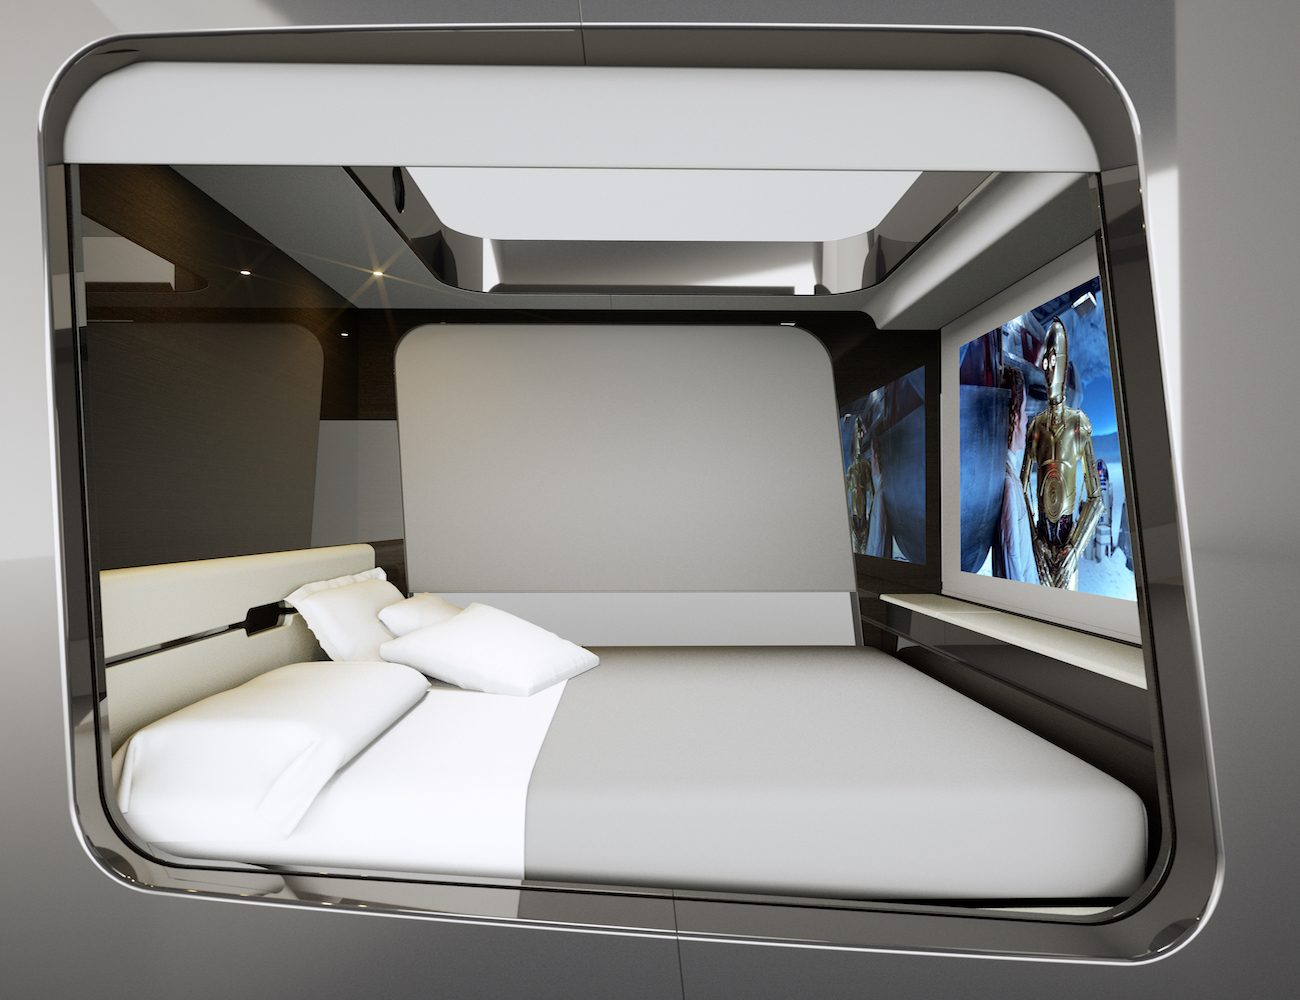 Thinking of buying a smart bed? Here's what you need to know - Hican 03